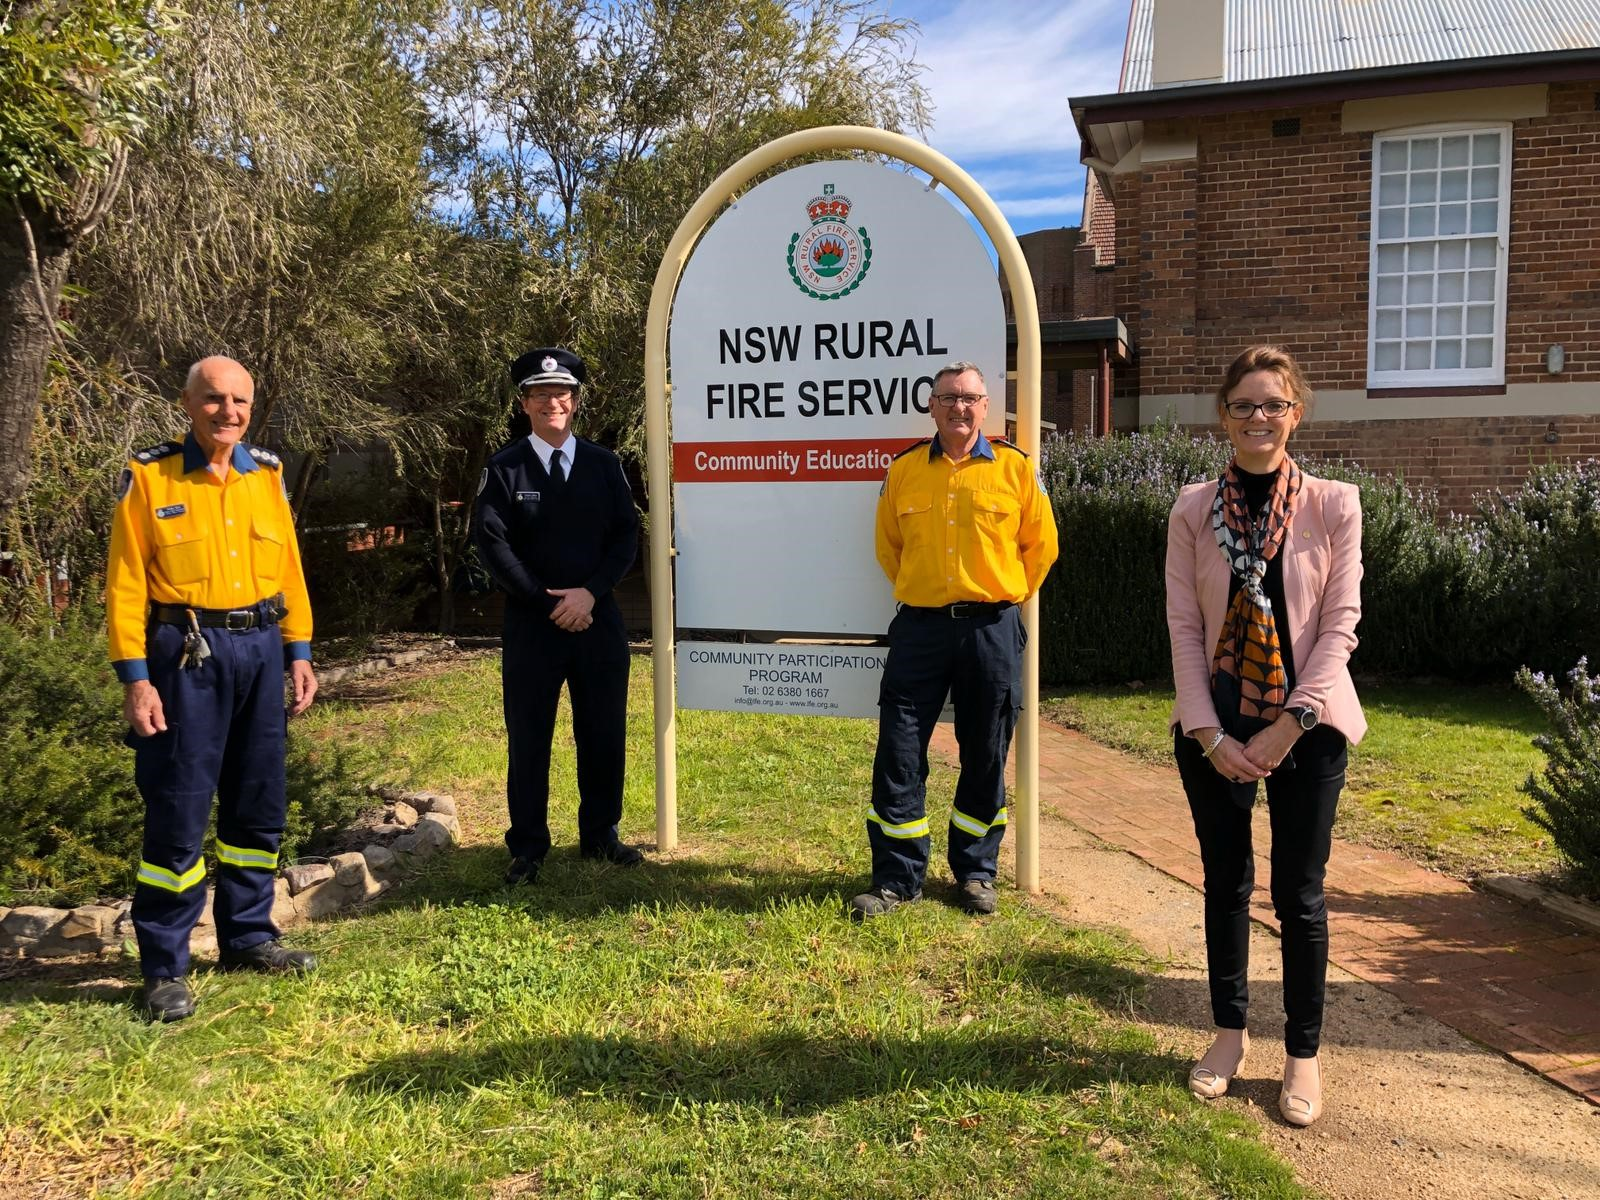 Group Captain Phillip Baer, APM, AFSM, Superintendent Andrew Dillon, Group Captain Peter Holding, AFSM and Member for Cootamundra Steph Cooke stand in front of an RFS sign.